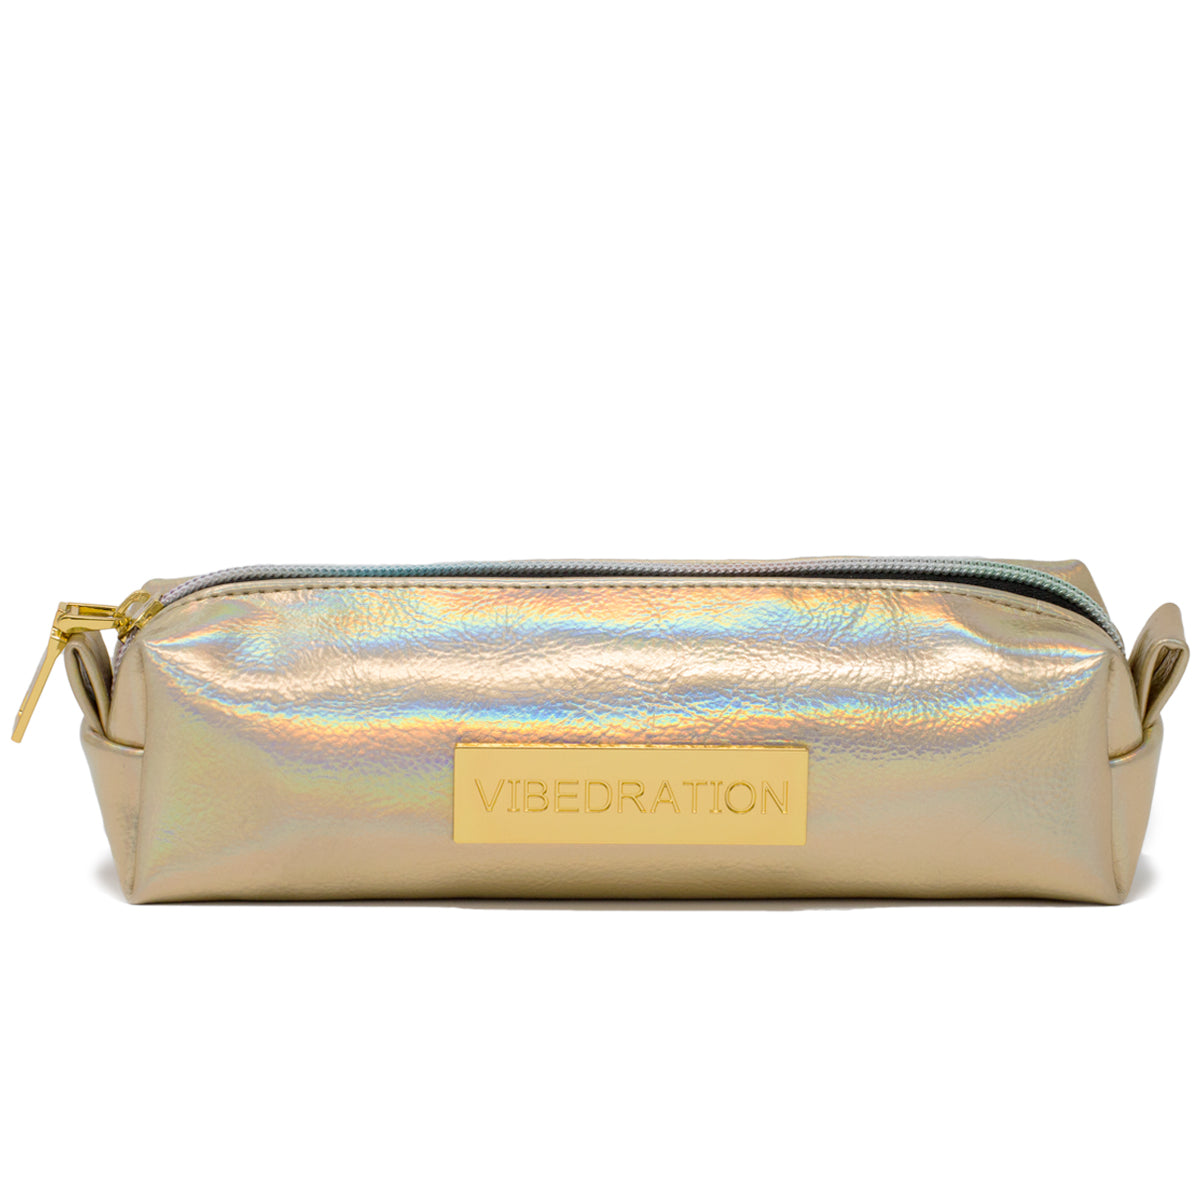 Front view of light gold pencil bag with gold vibedration plated logo.